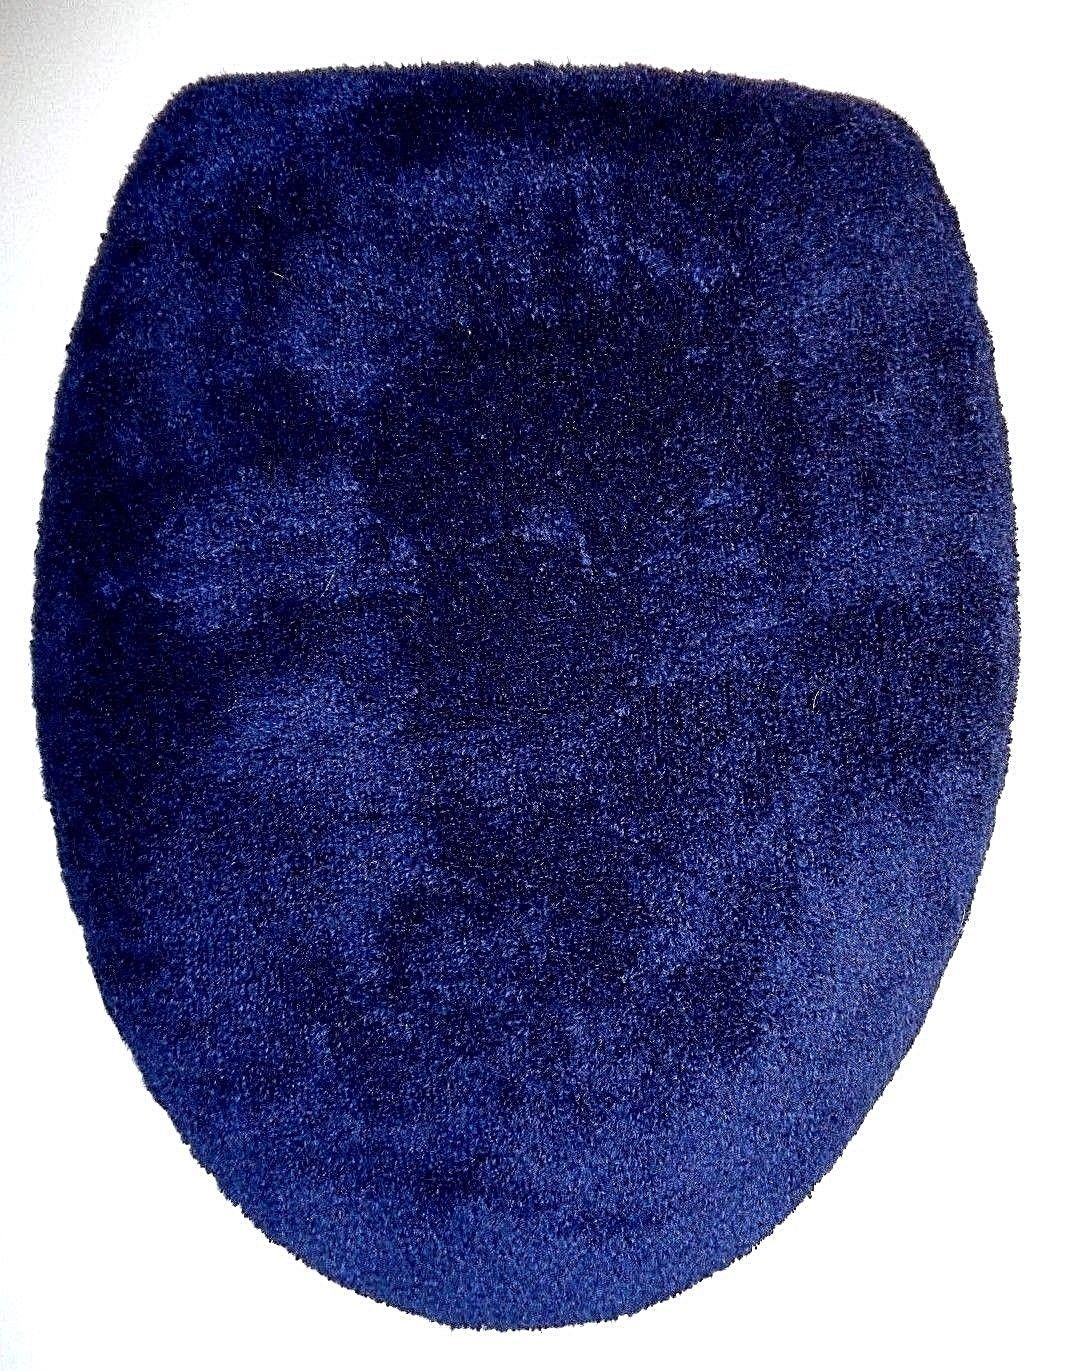 Bathmats Rugs And Toilet Covers 133696 Navy Blue Terry Cloth